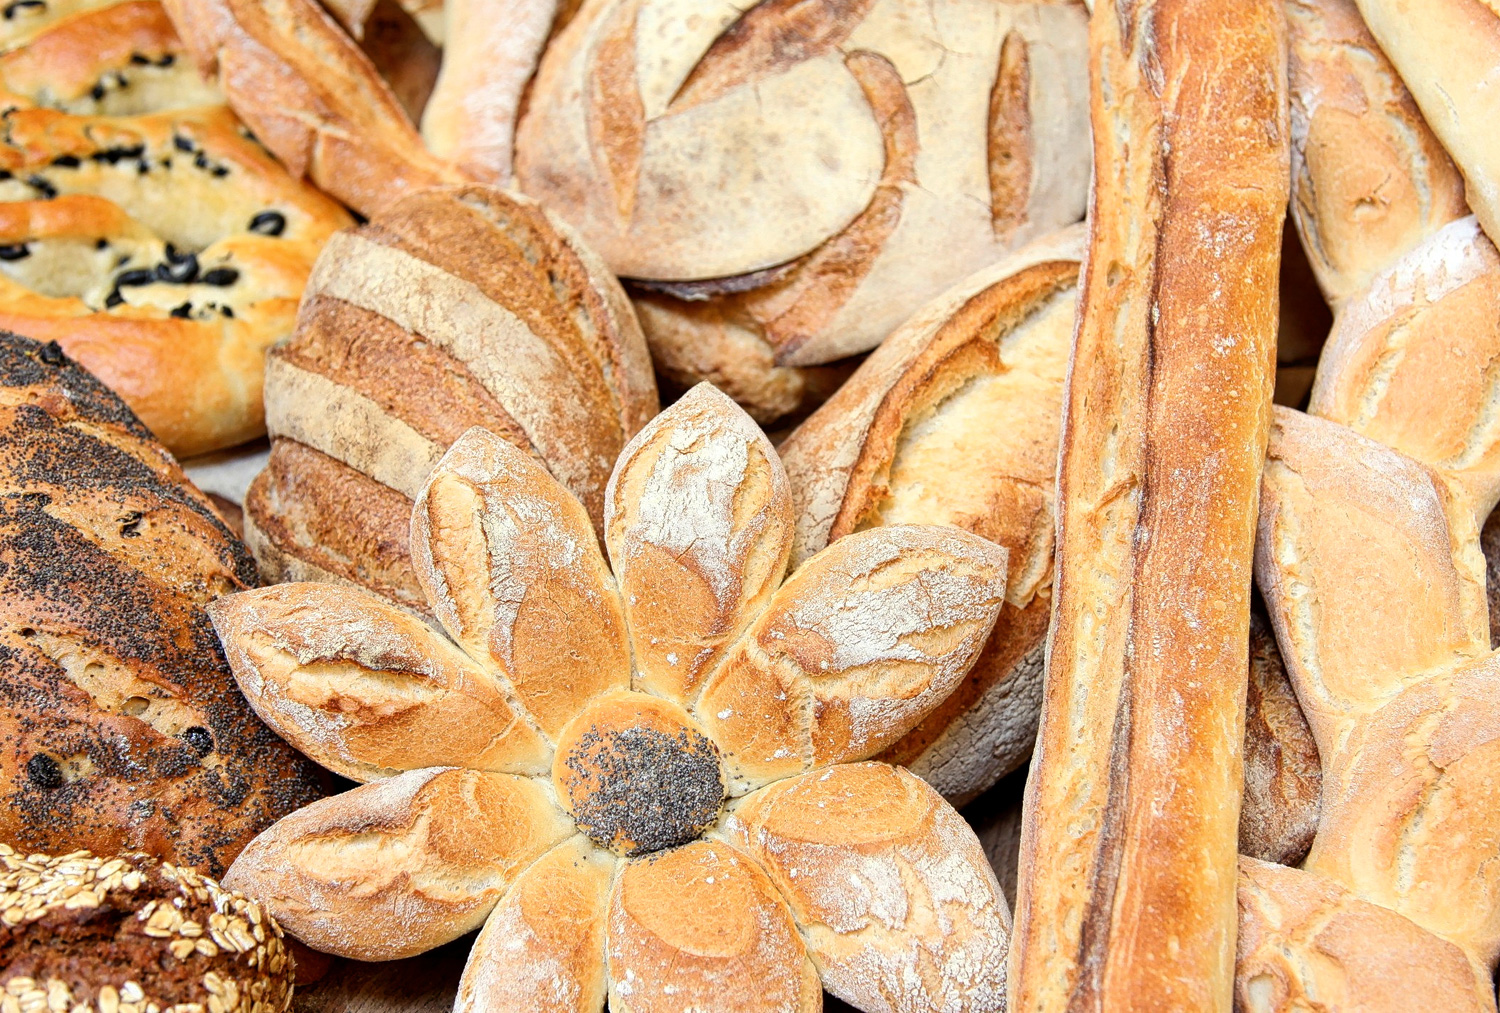 boulangerie-jade-products-breads-selection.jpg